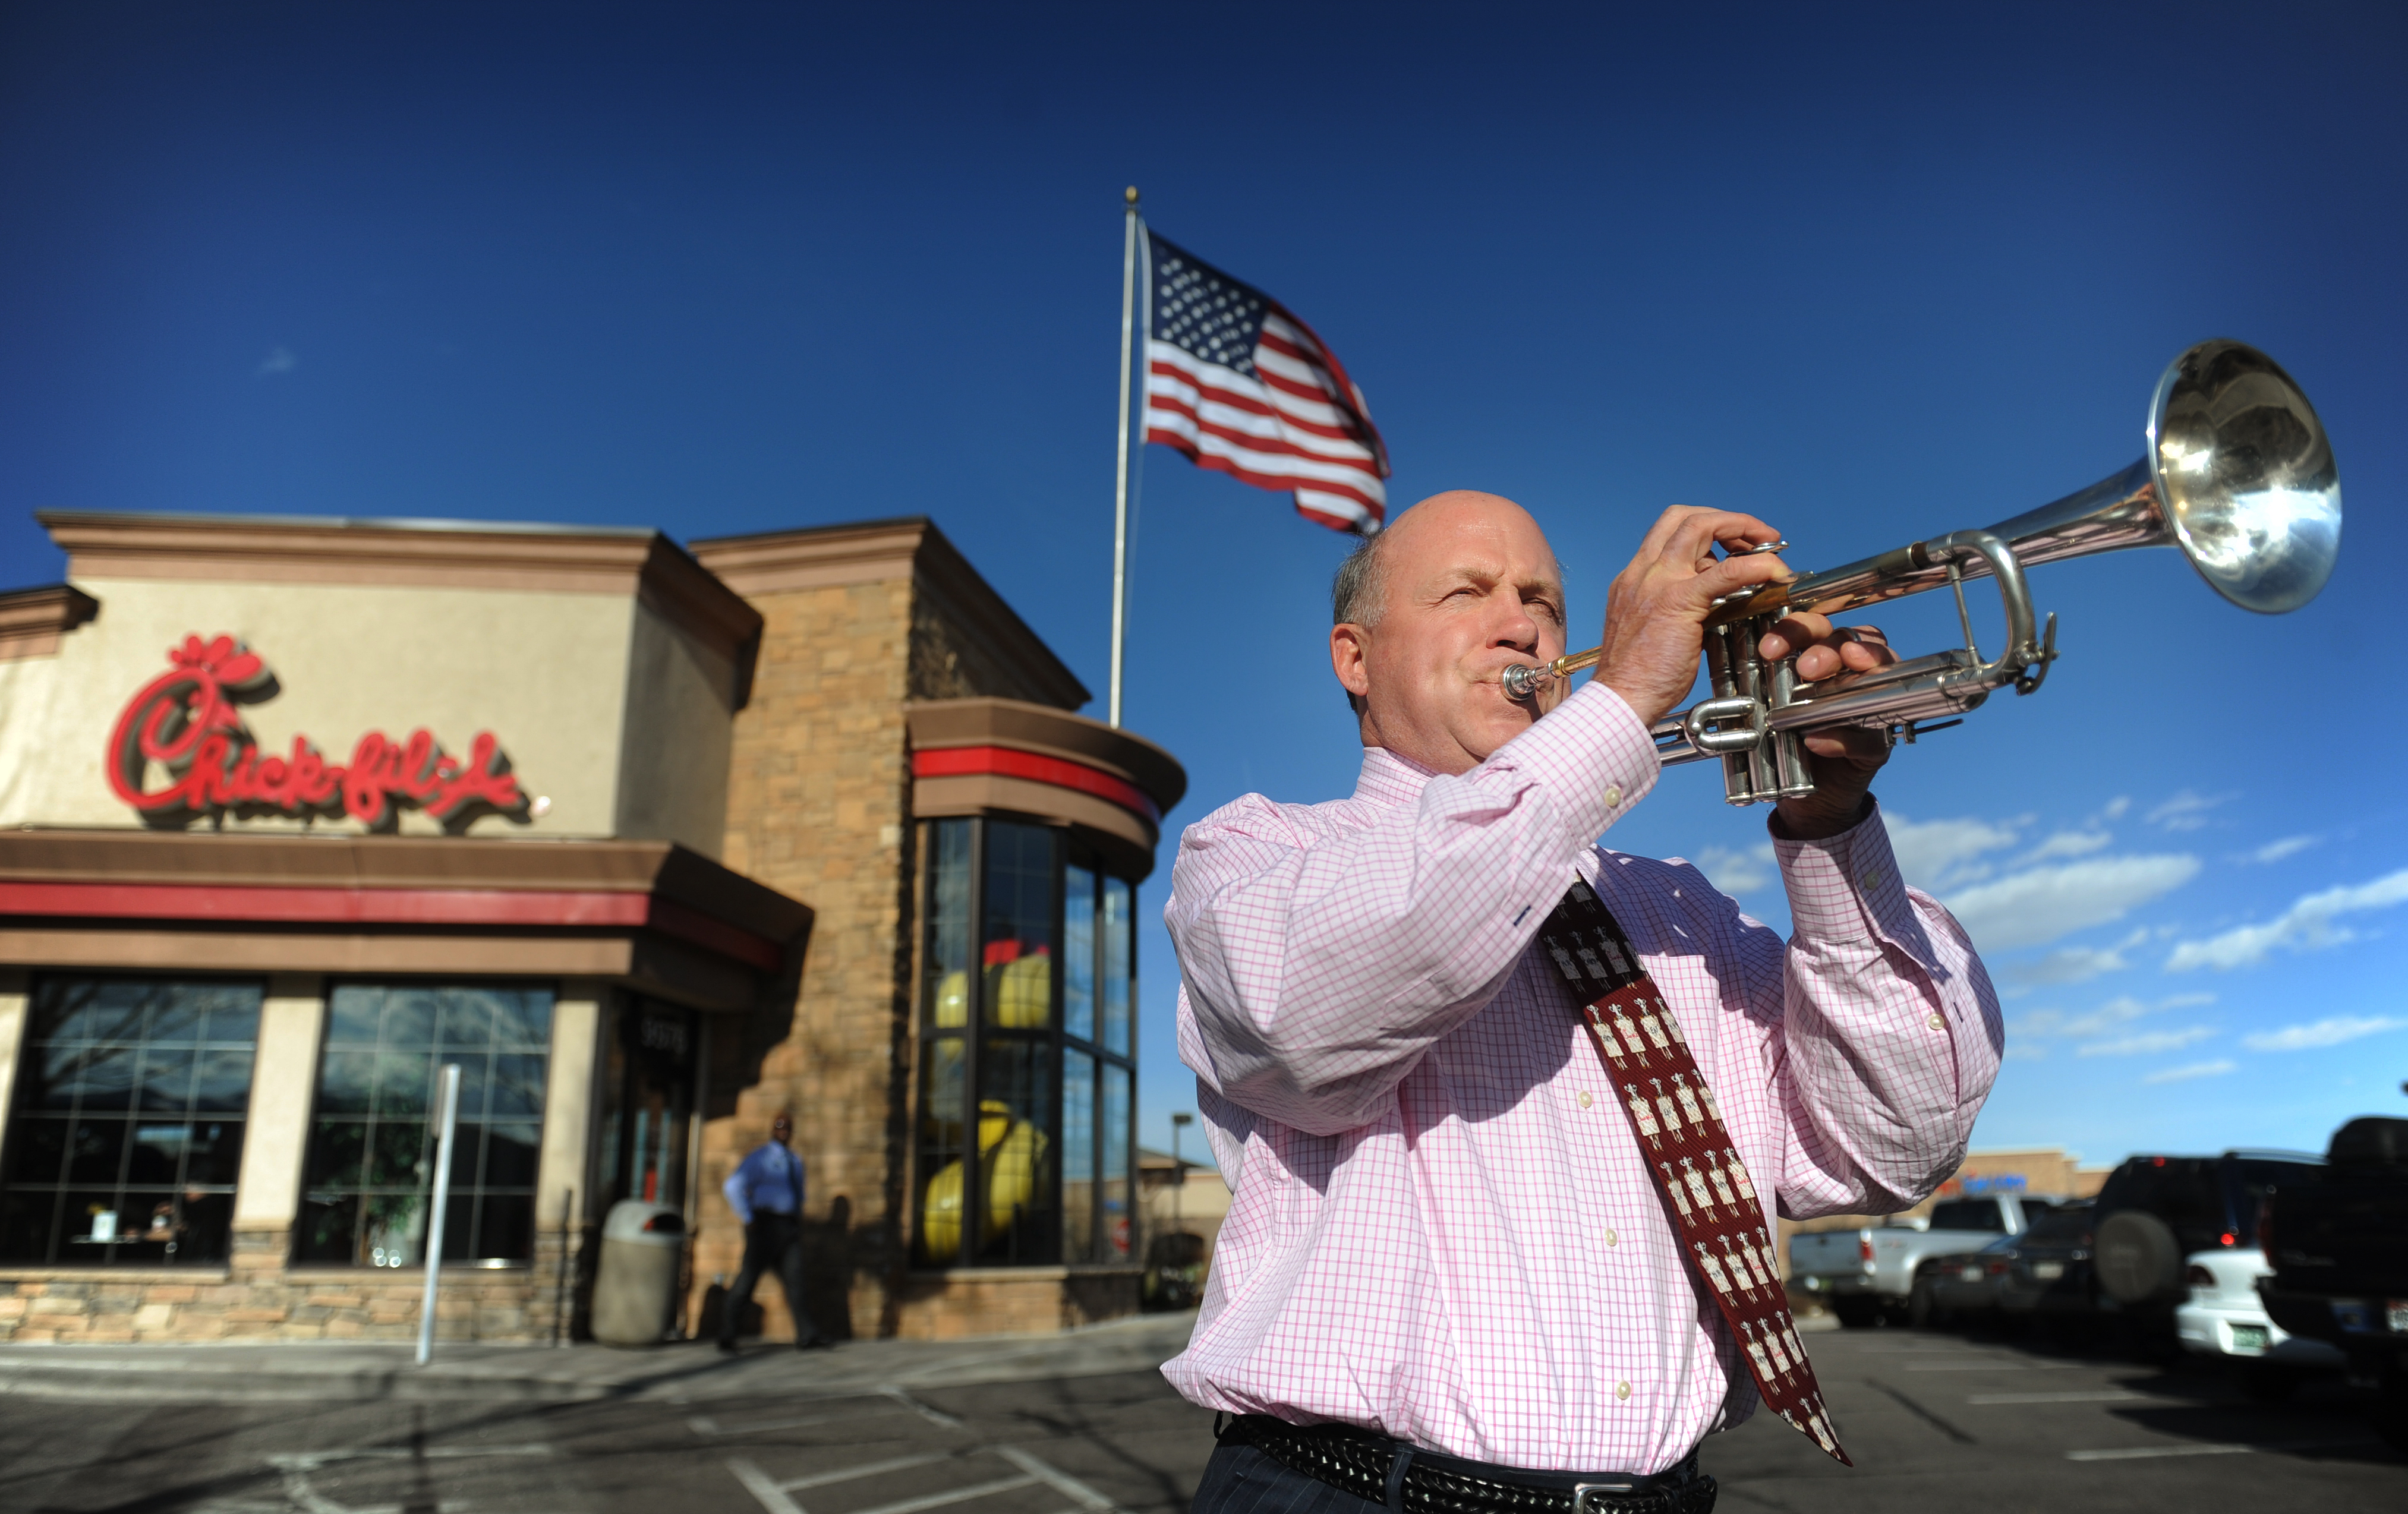 Chick-fil-A president Dan Cathy, son of the chain's founder Truett Cathy